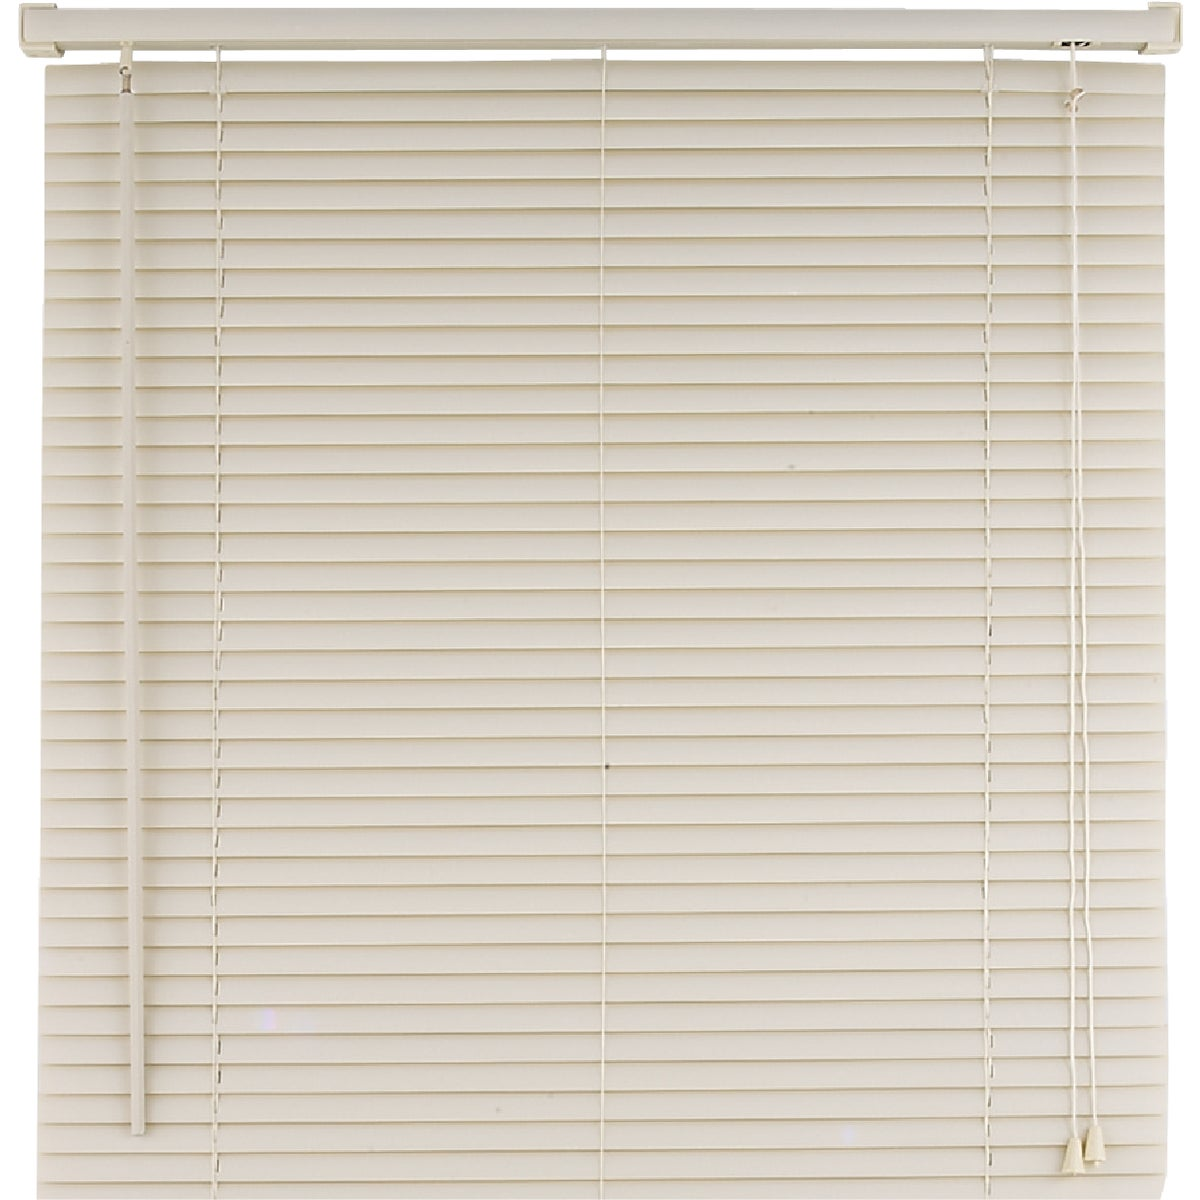 60X64 ALABASTER BLIND - 15299 by Lotus Wind Incom